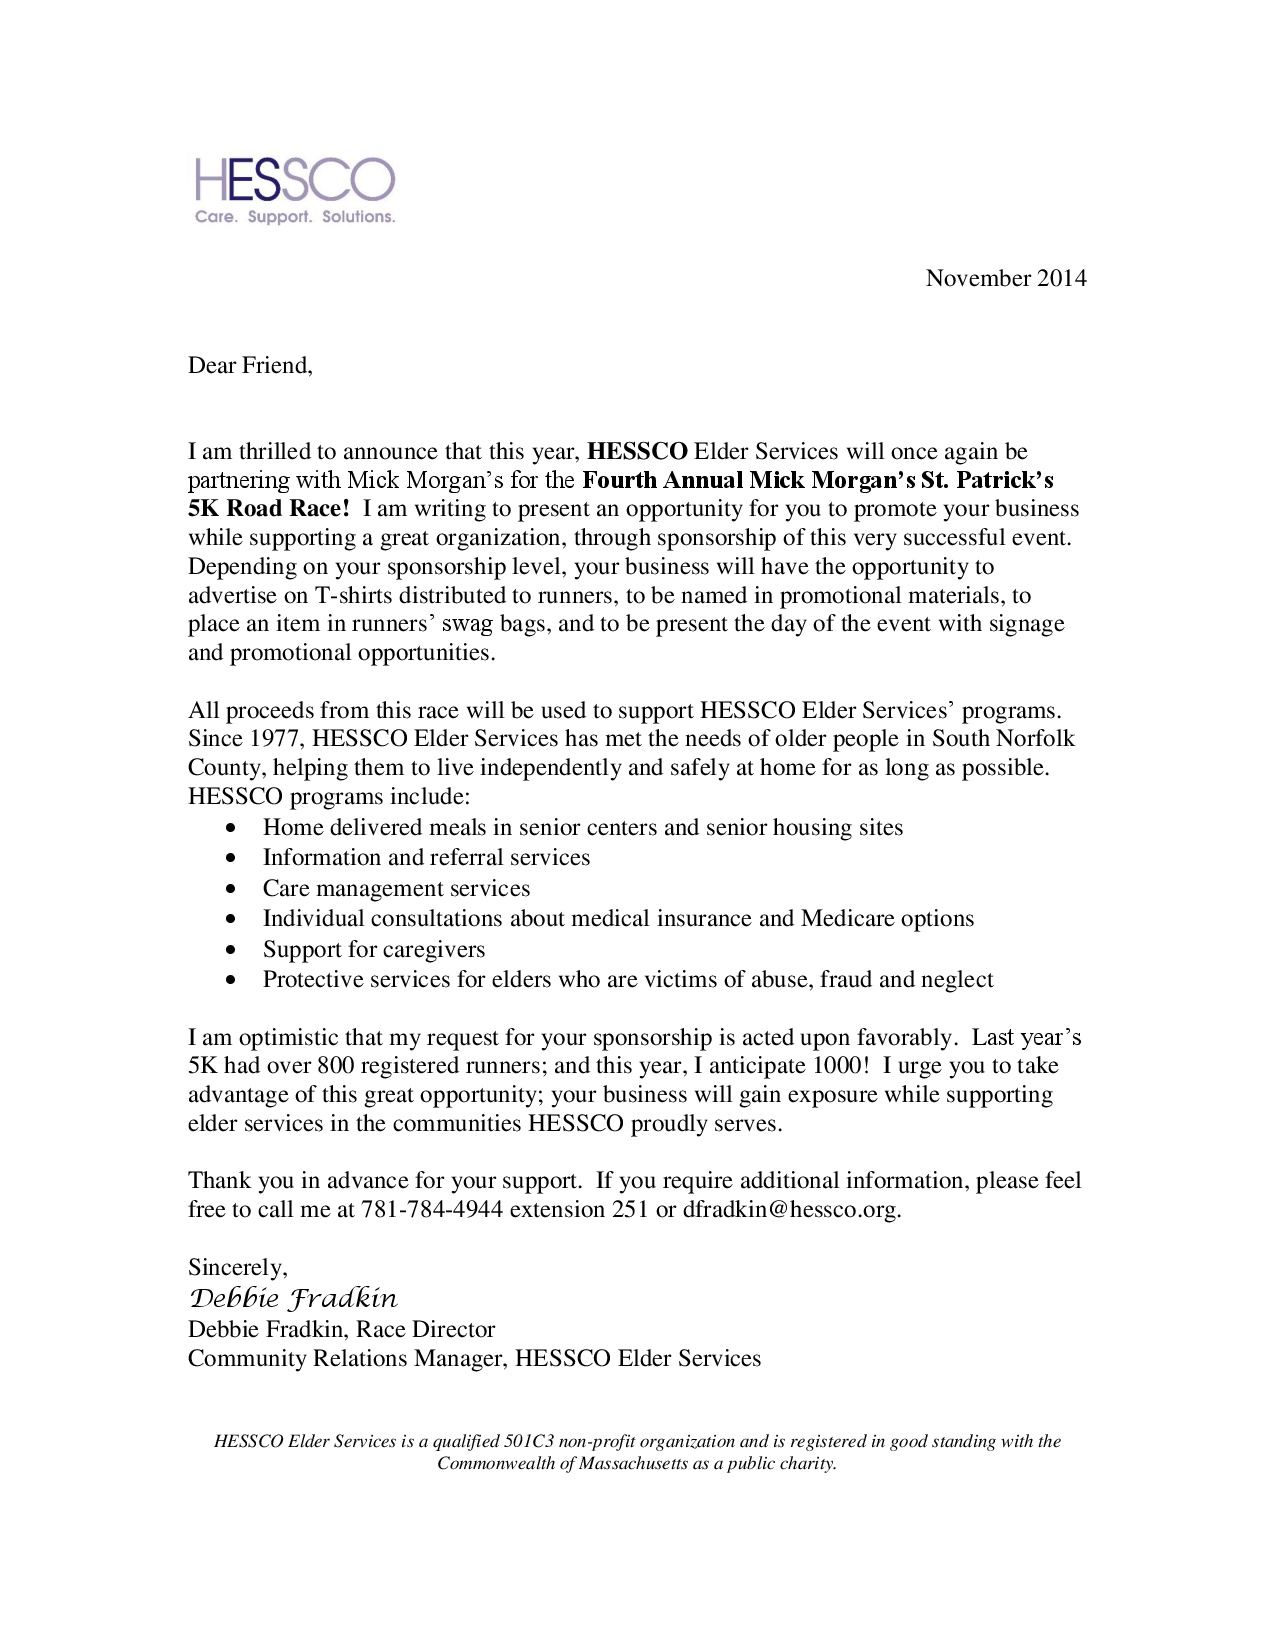 sponsorship executive cover letter free cover letter and resume sponsorship cover letter email 0 sponsorship executive